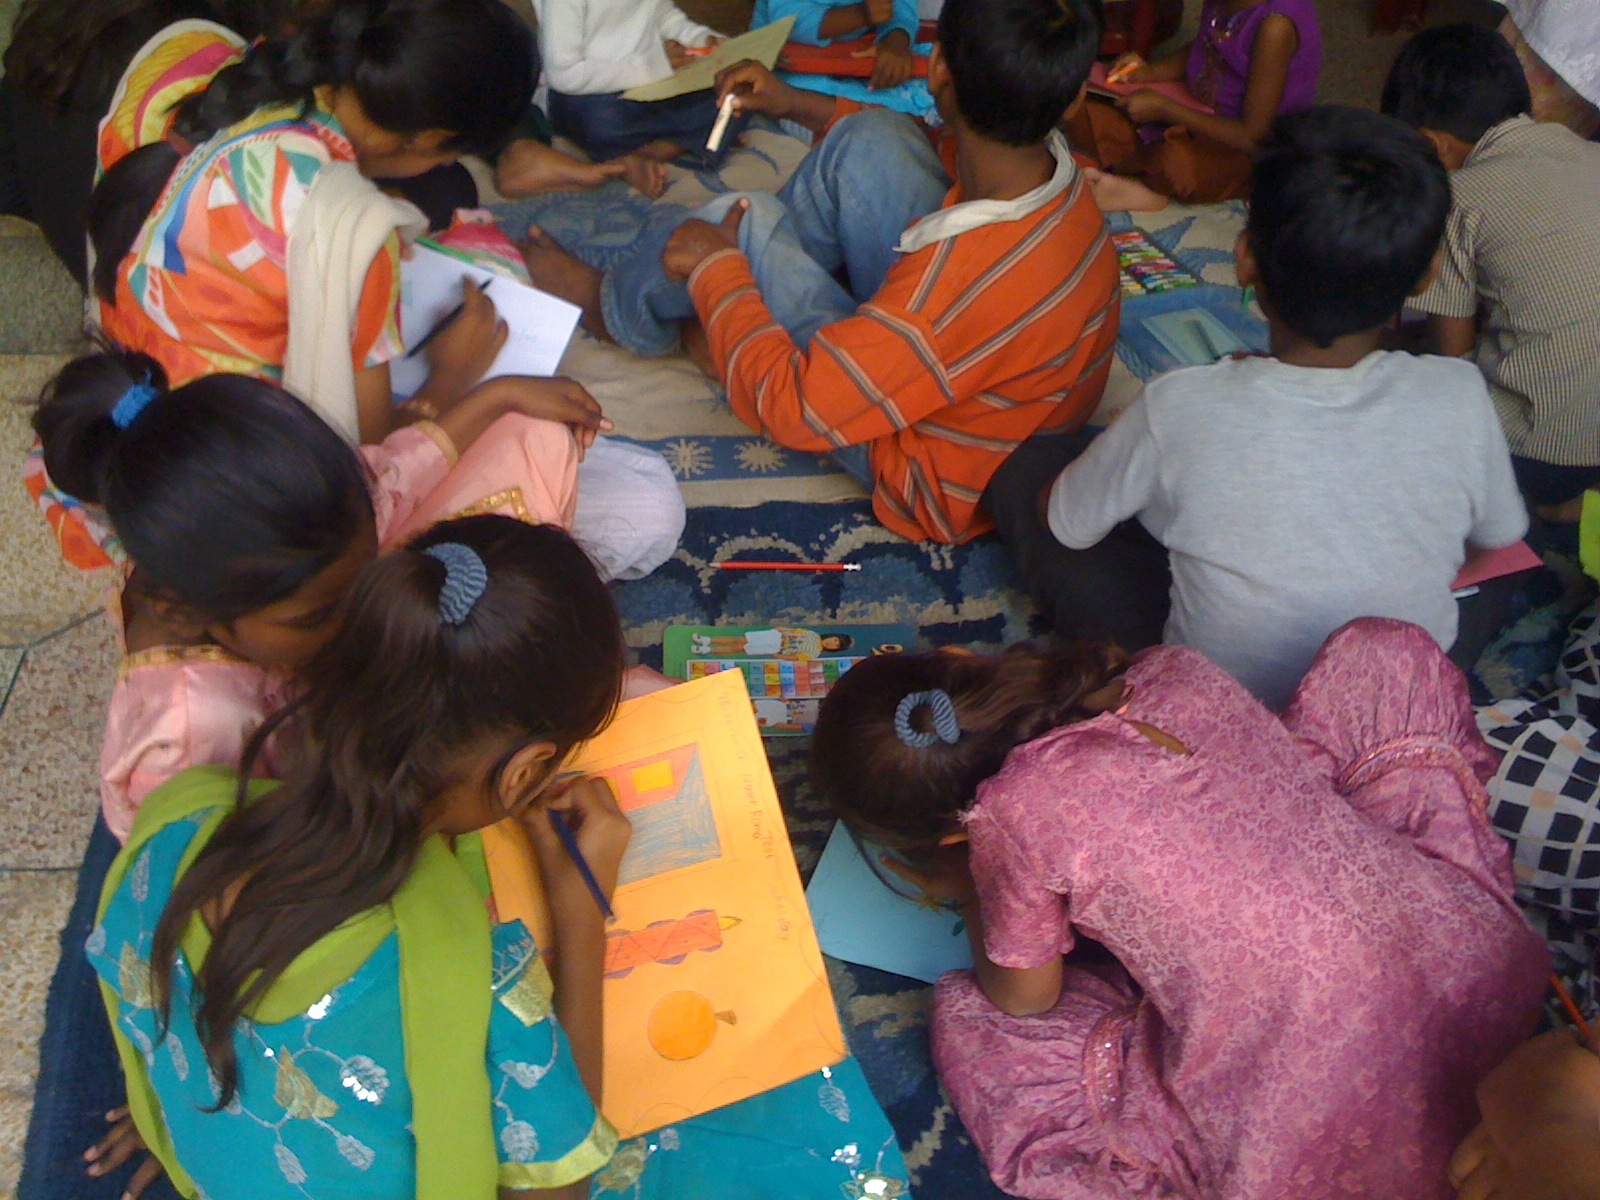 A few of the 33 children taking a break from learning to read Urdu and English, and drawing pictures